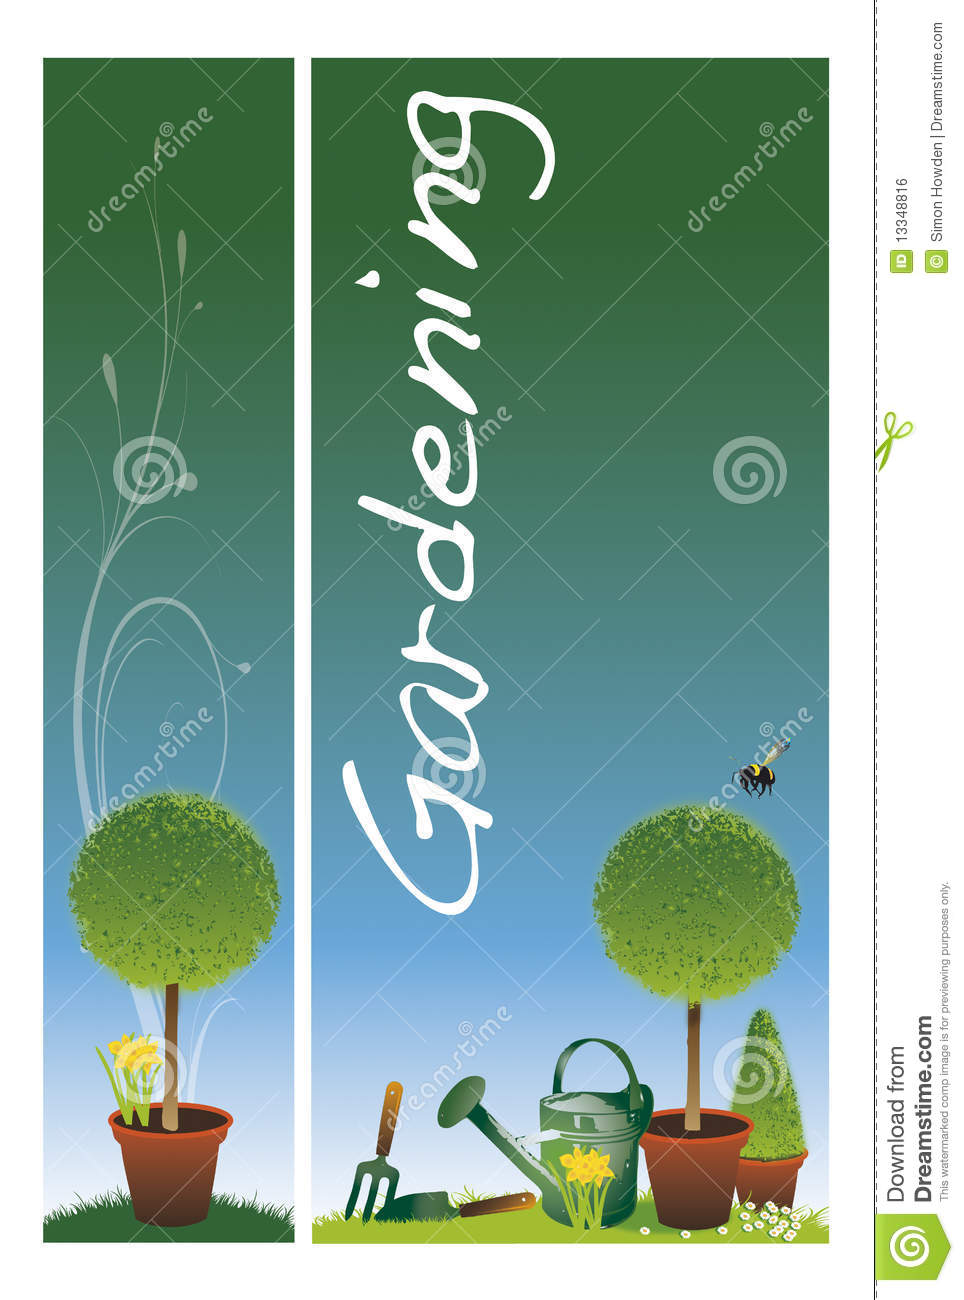 Garden Banners Royalty Free Stock Image Image 13348816